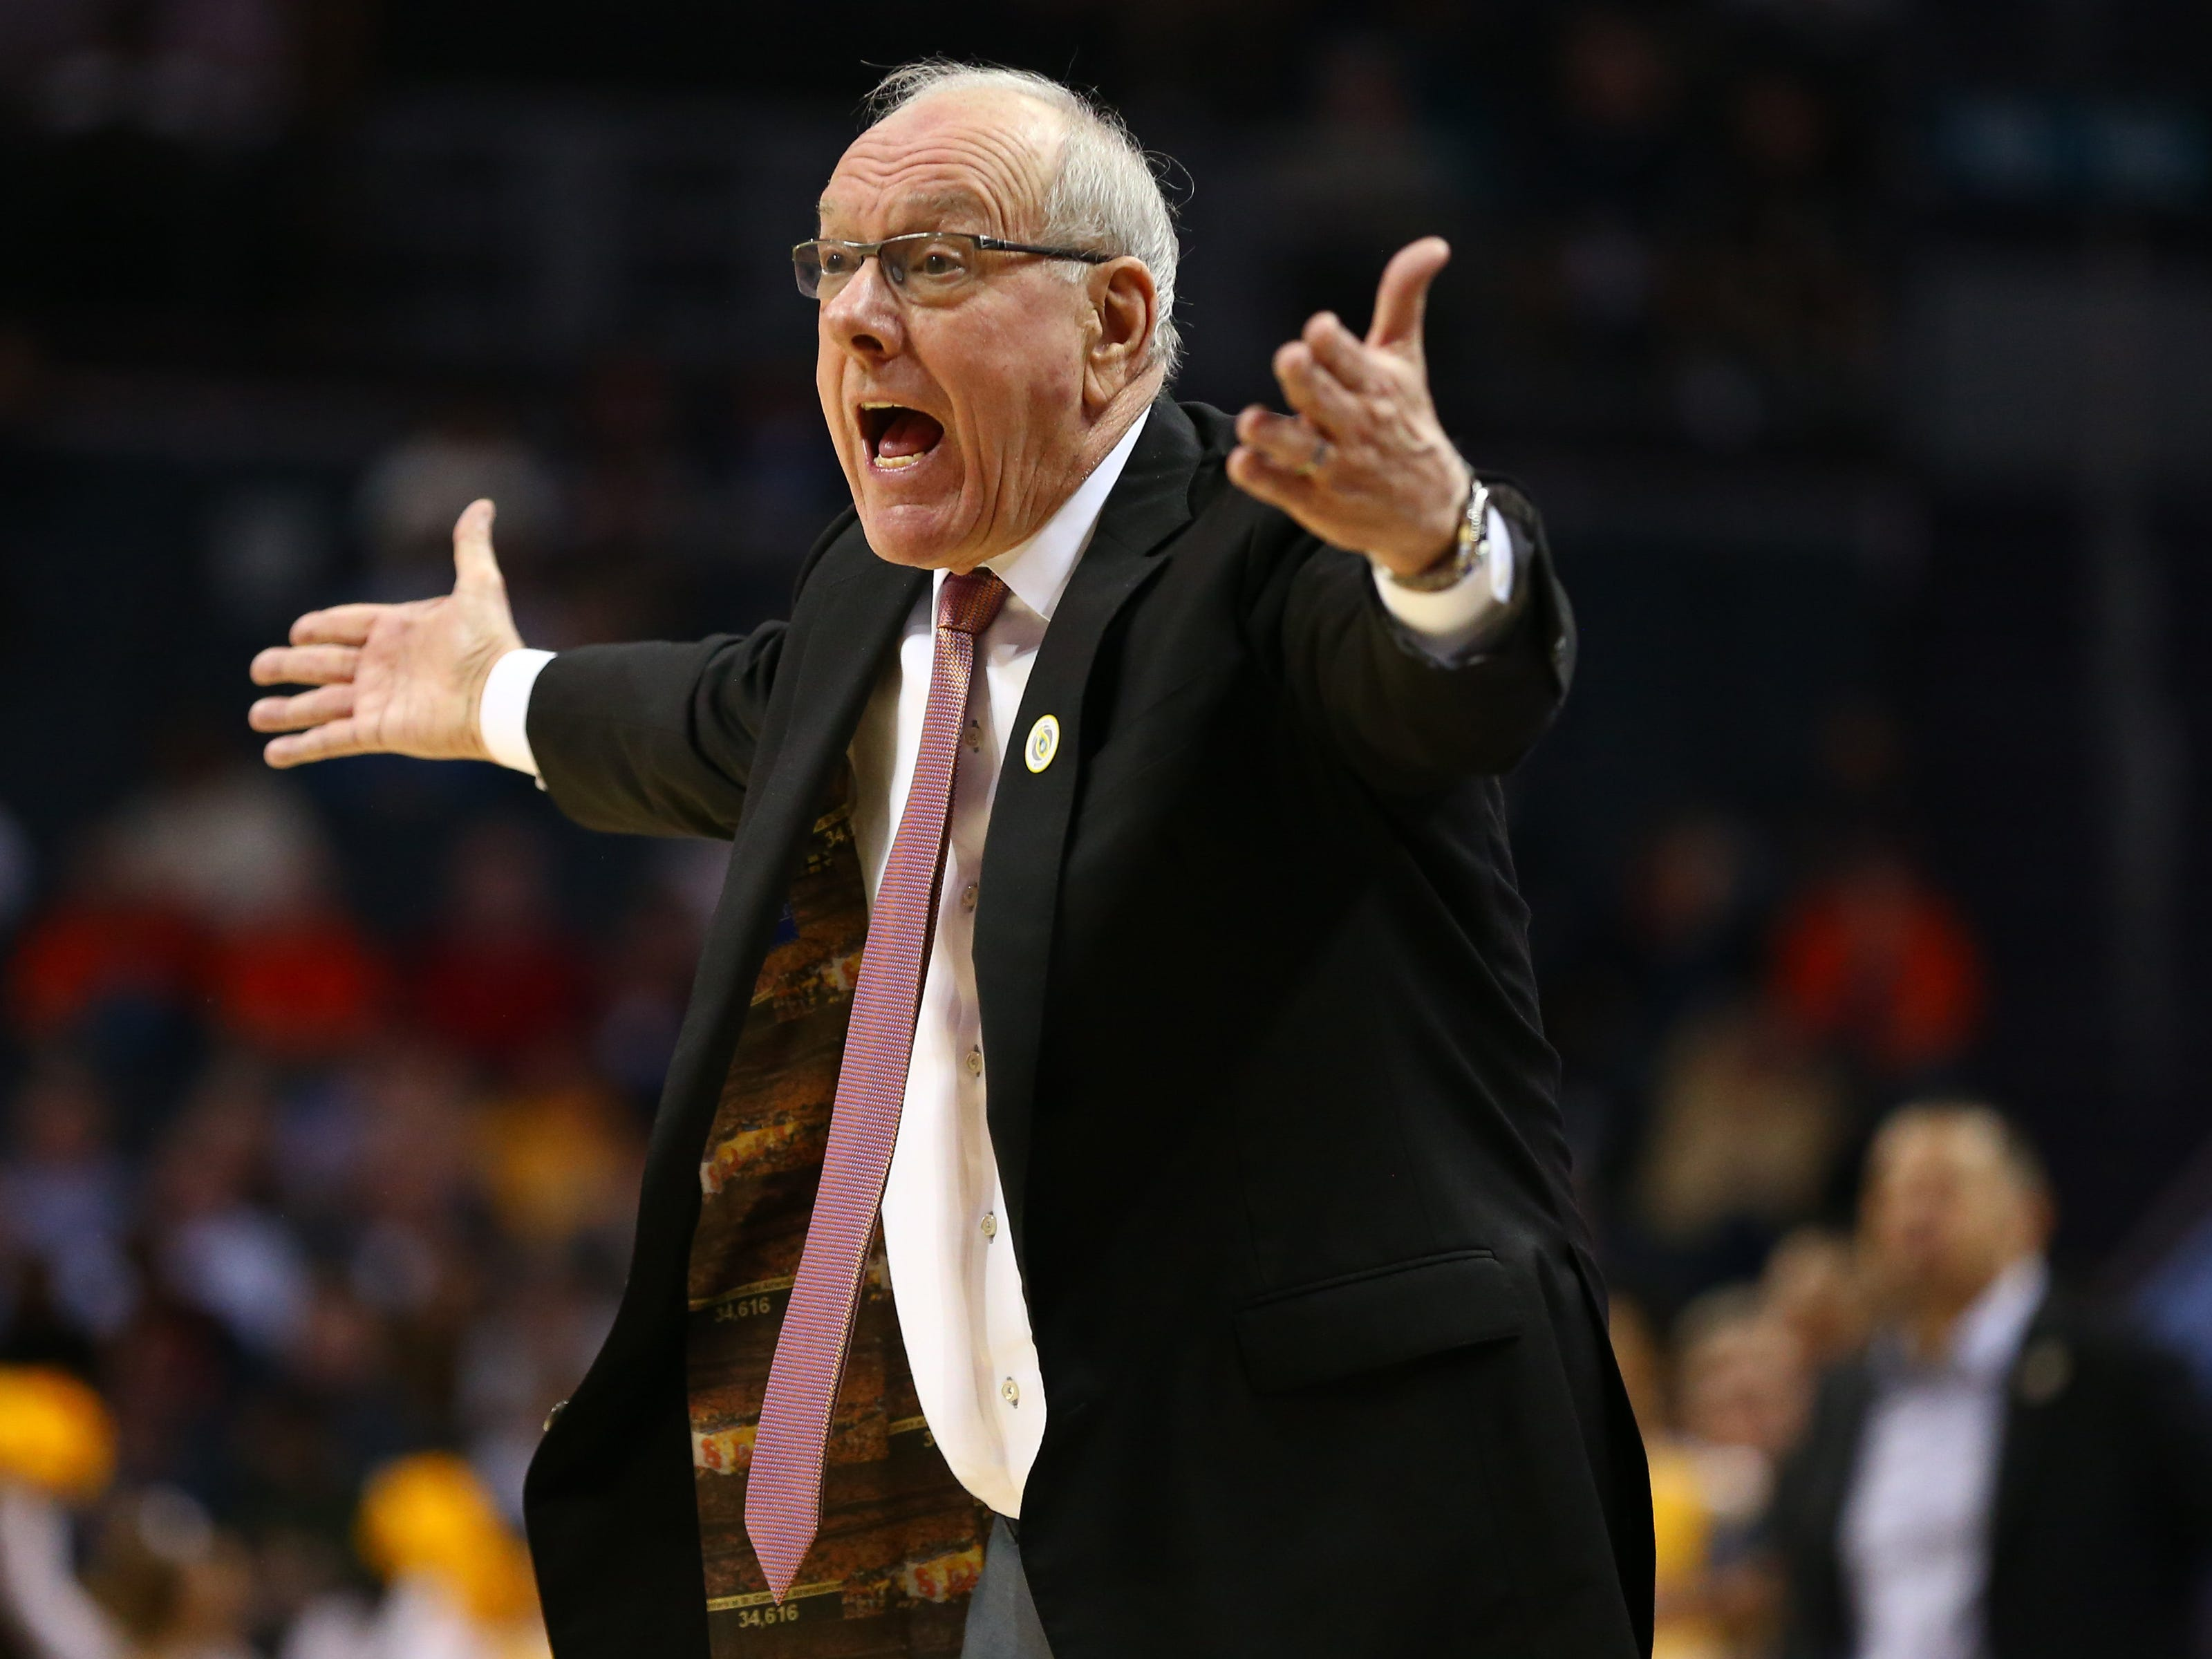 Syracusecoach Jim Boeheim reacts to a call in the first half against the Pittsburgh Panthers in the ACC conference tournament at Spectrum Center.